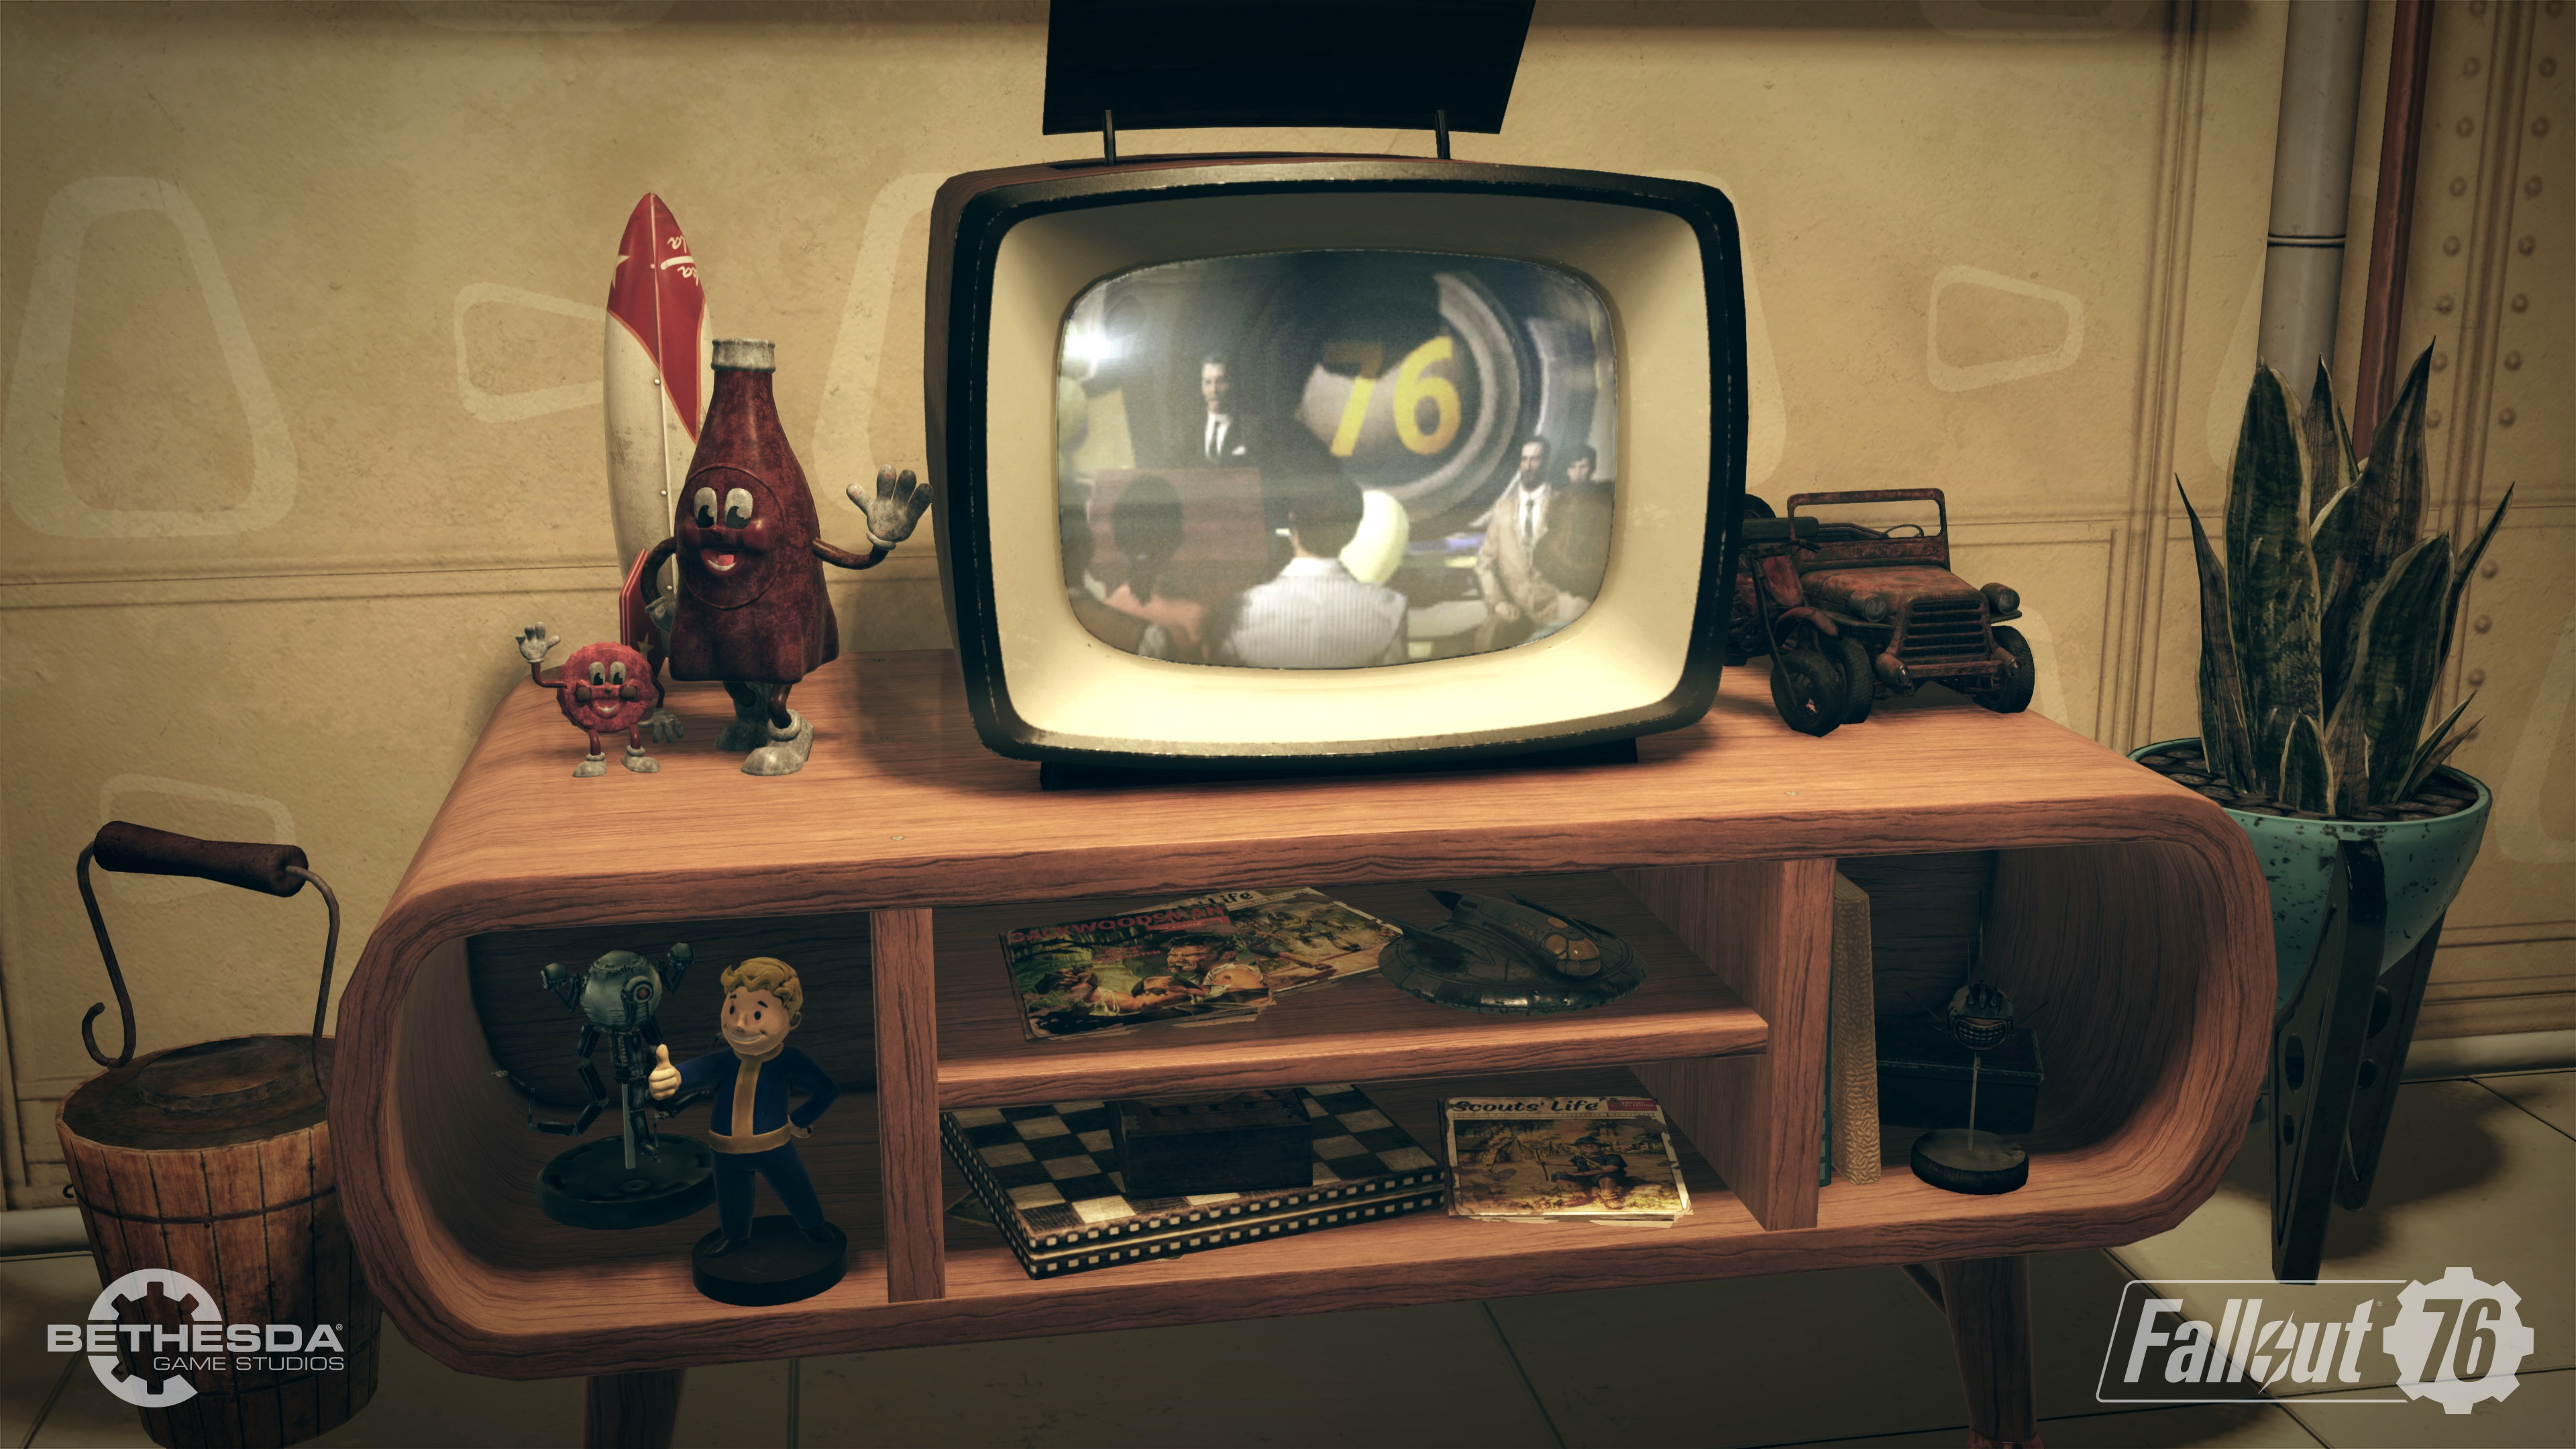 Fallout 76 Is The Next Game In The Fallout Universe Polygon